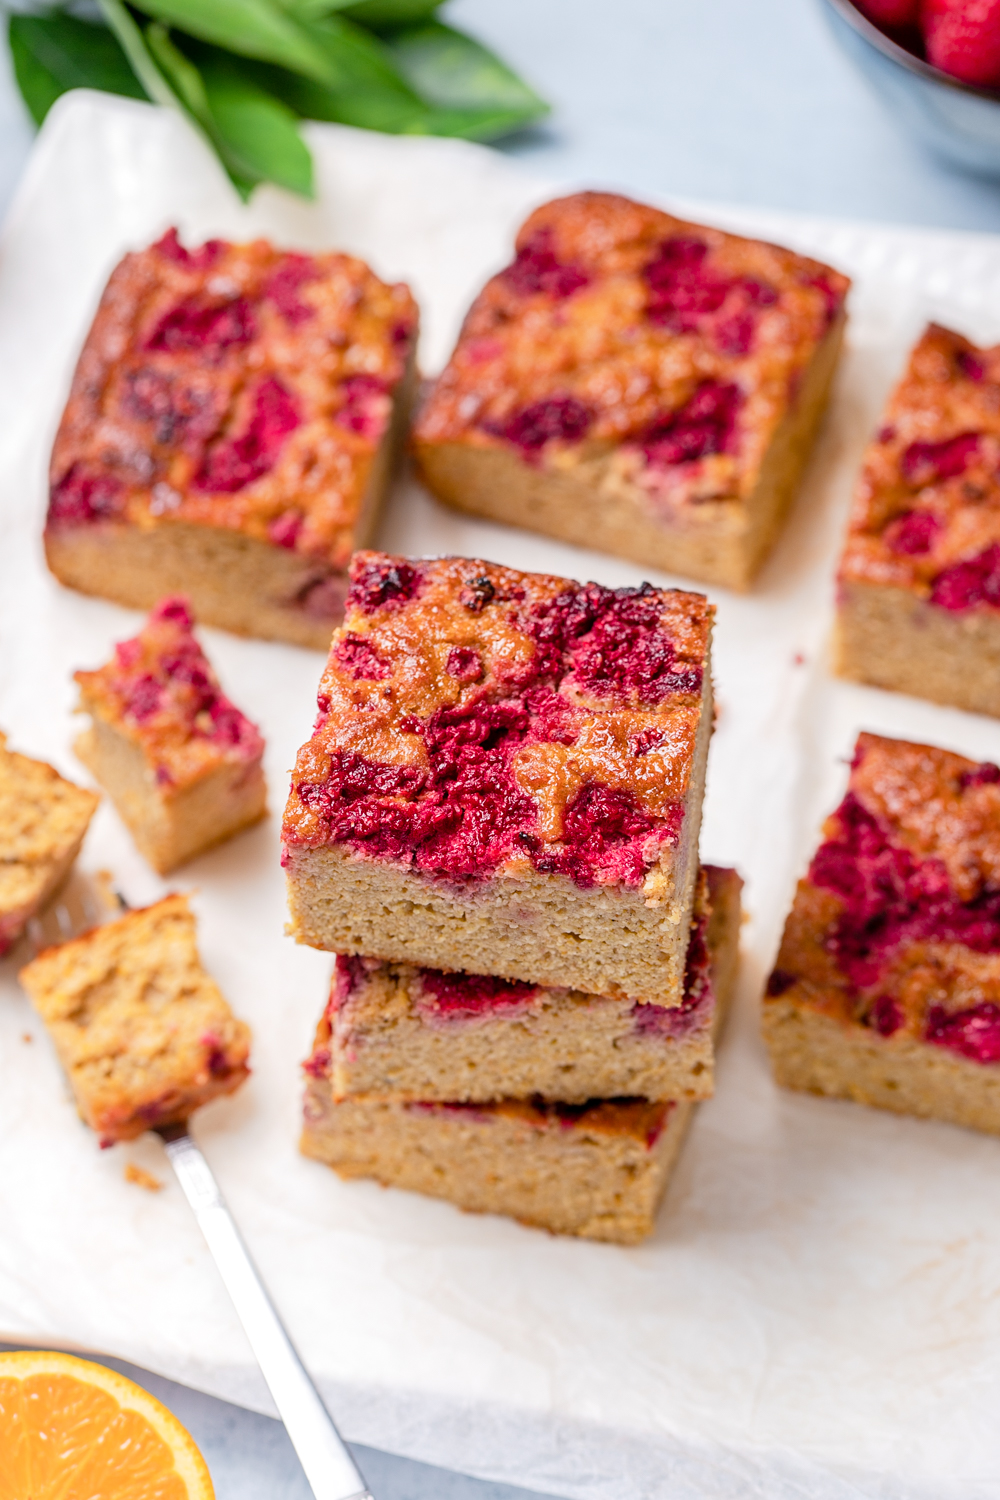 Squares of healthy orange almond cake stacked, topped with raspberries